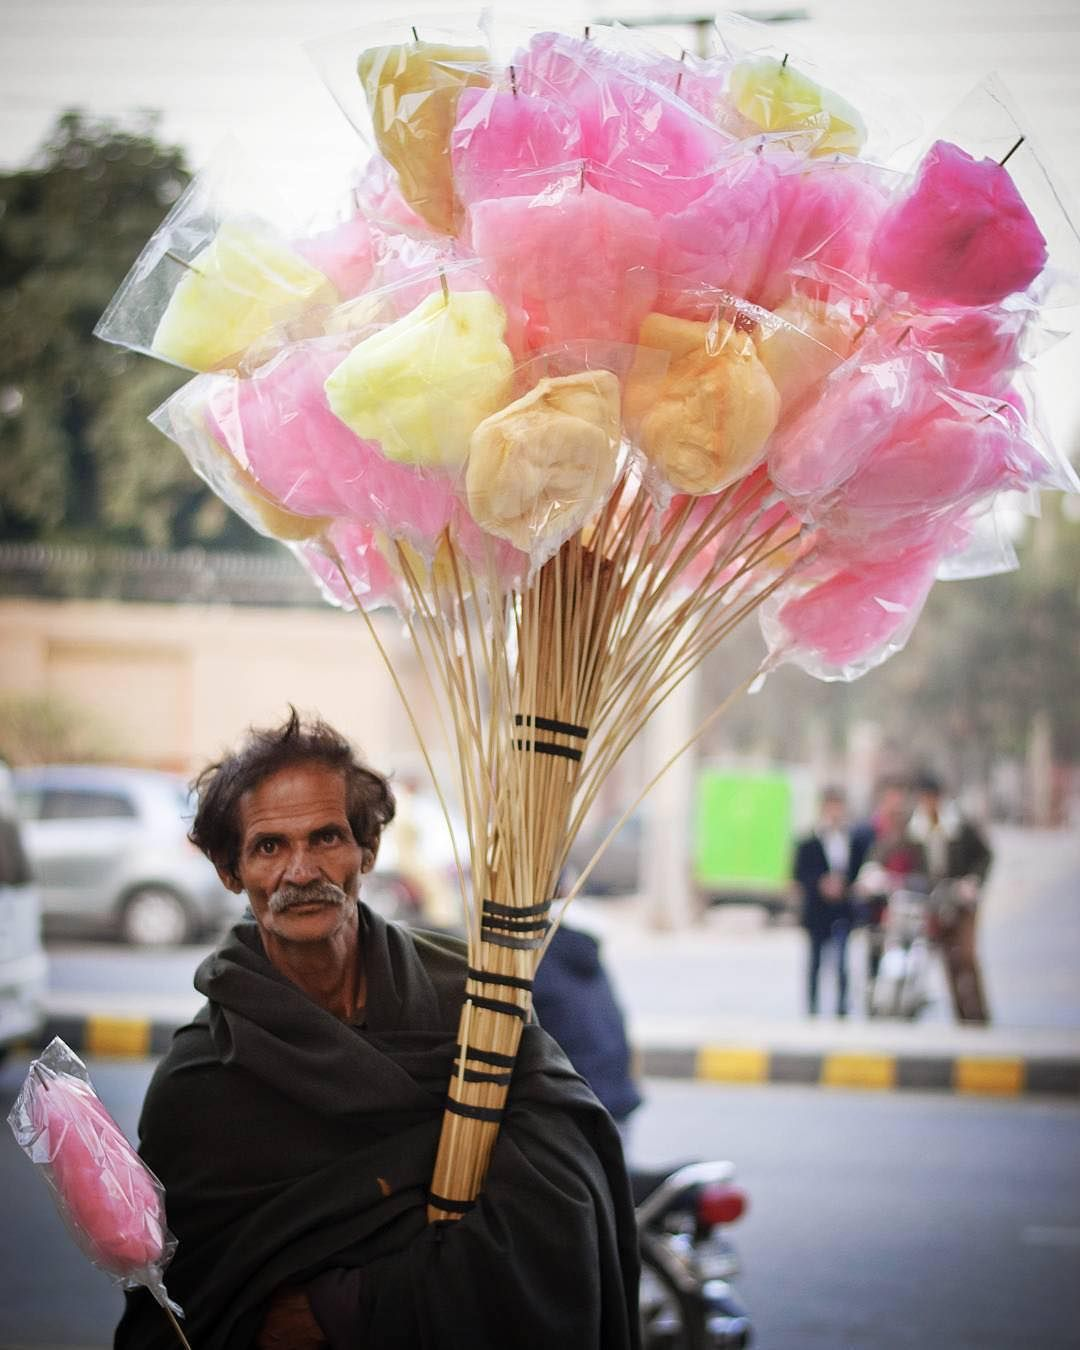 """Photo submitted by @az_chaudhary : Cotton #candy seller outside the Jinnah Park, #Faisalabad Submit your photos by using hashtag #dawndotcom…"""